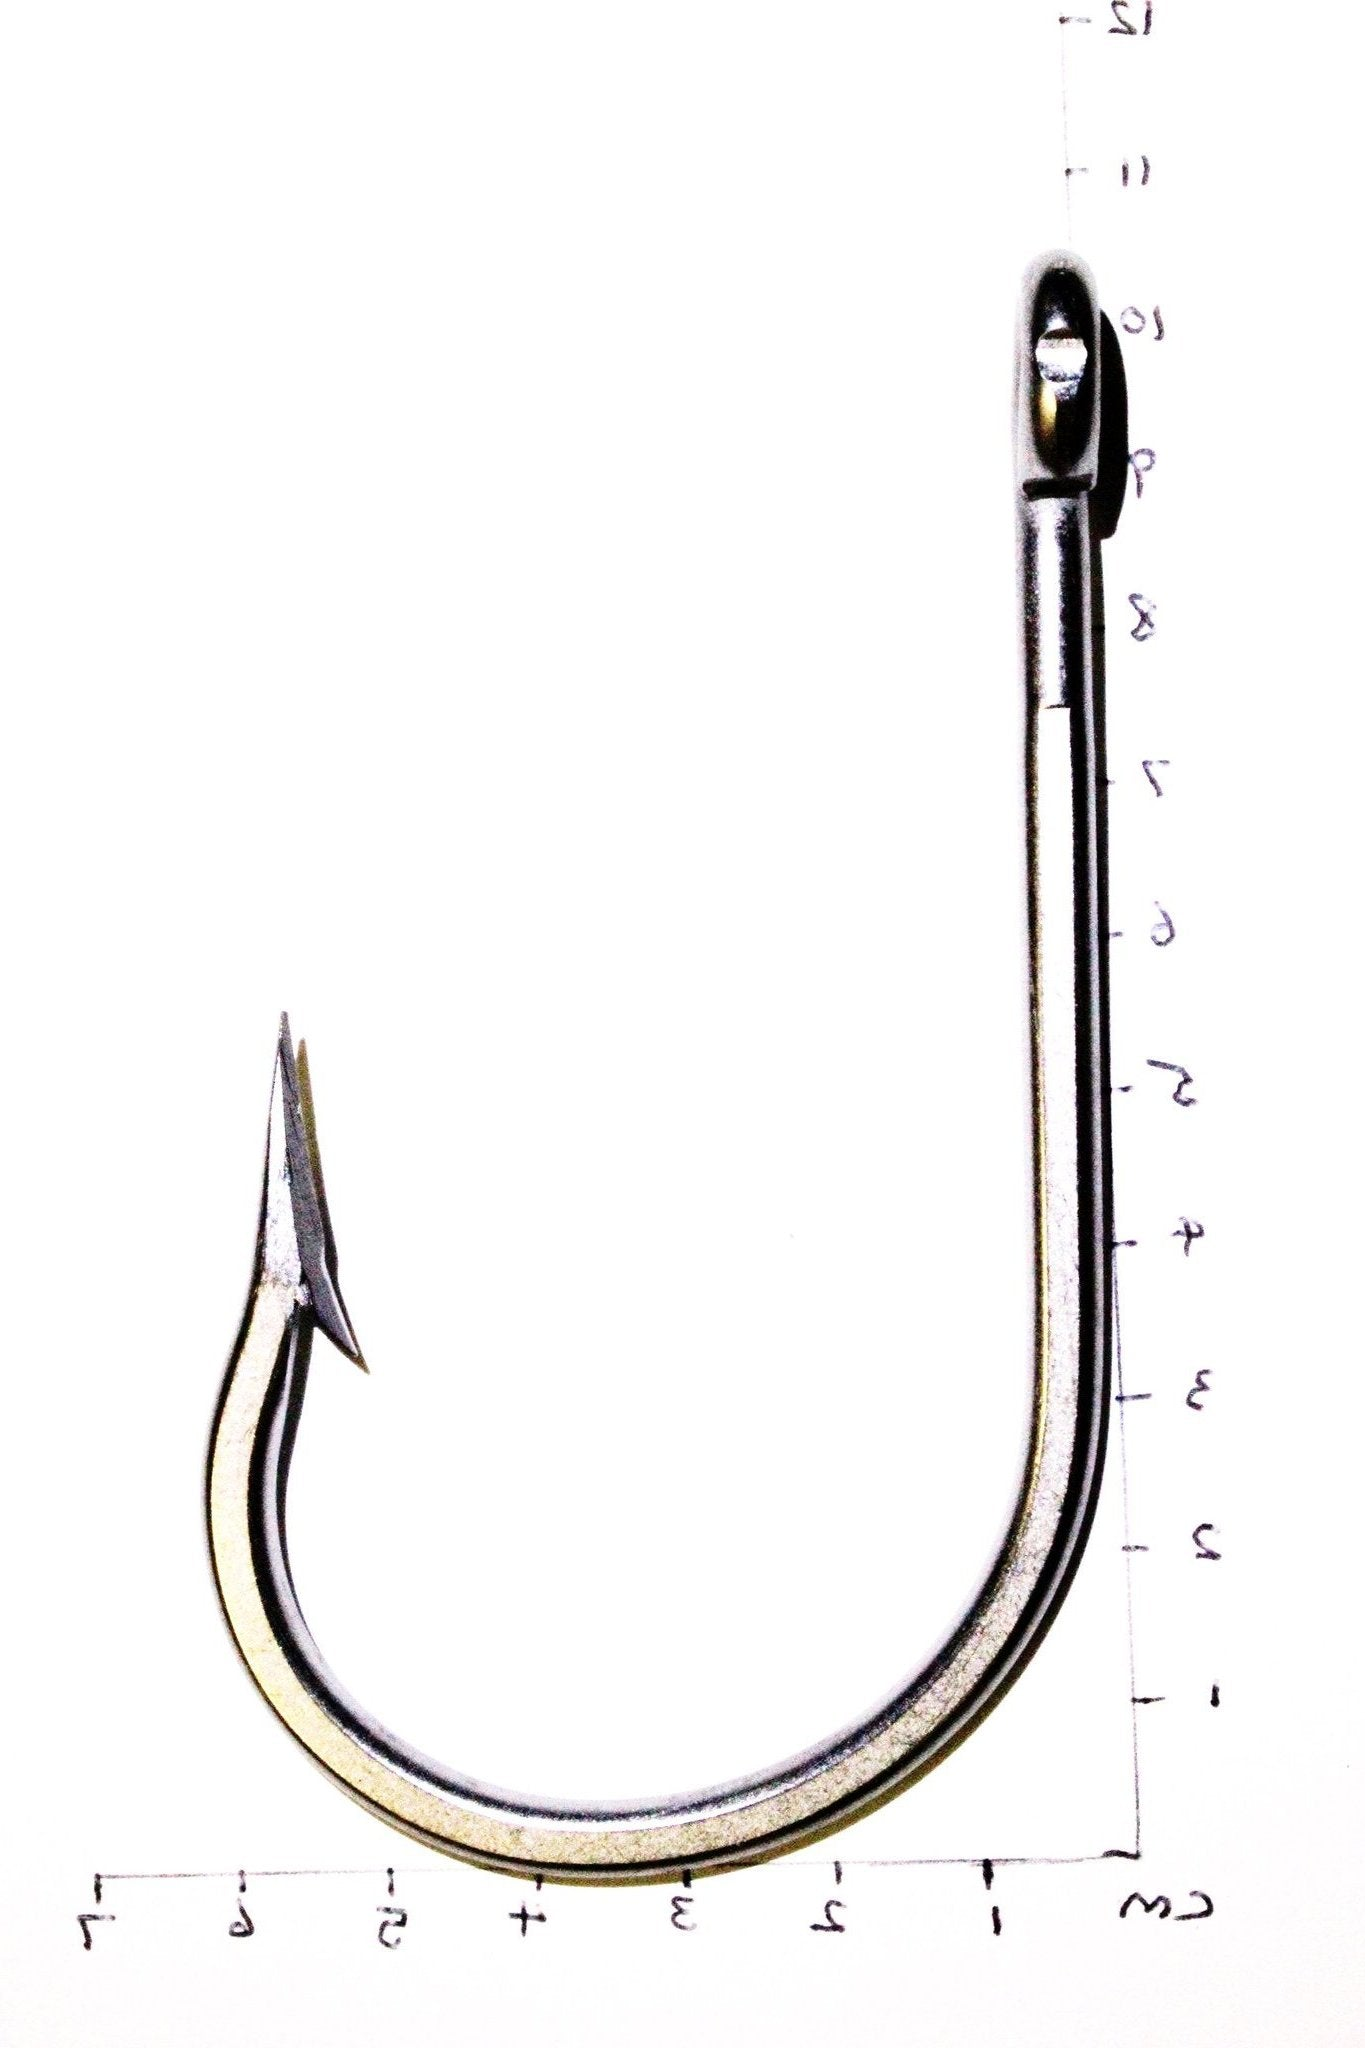 Big Game Hook Stainless Steel